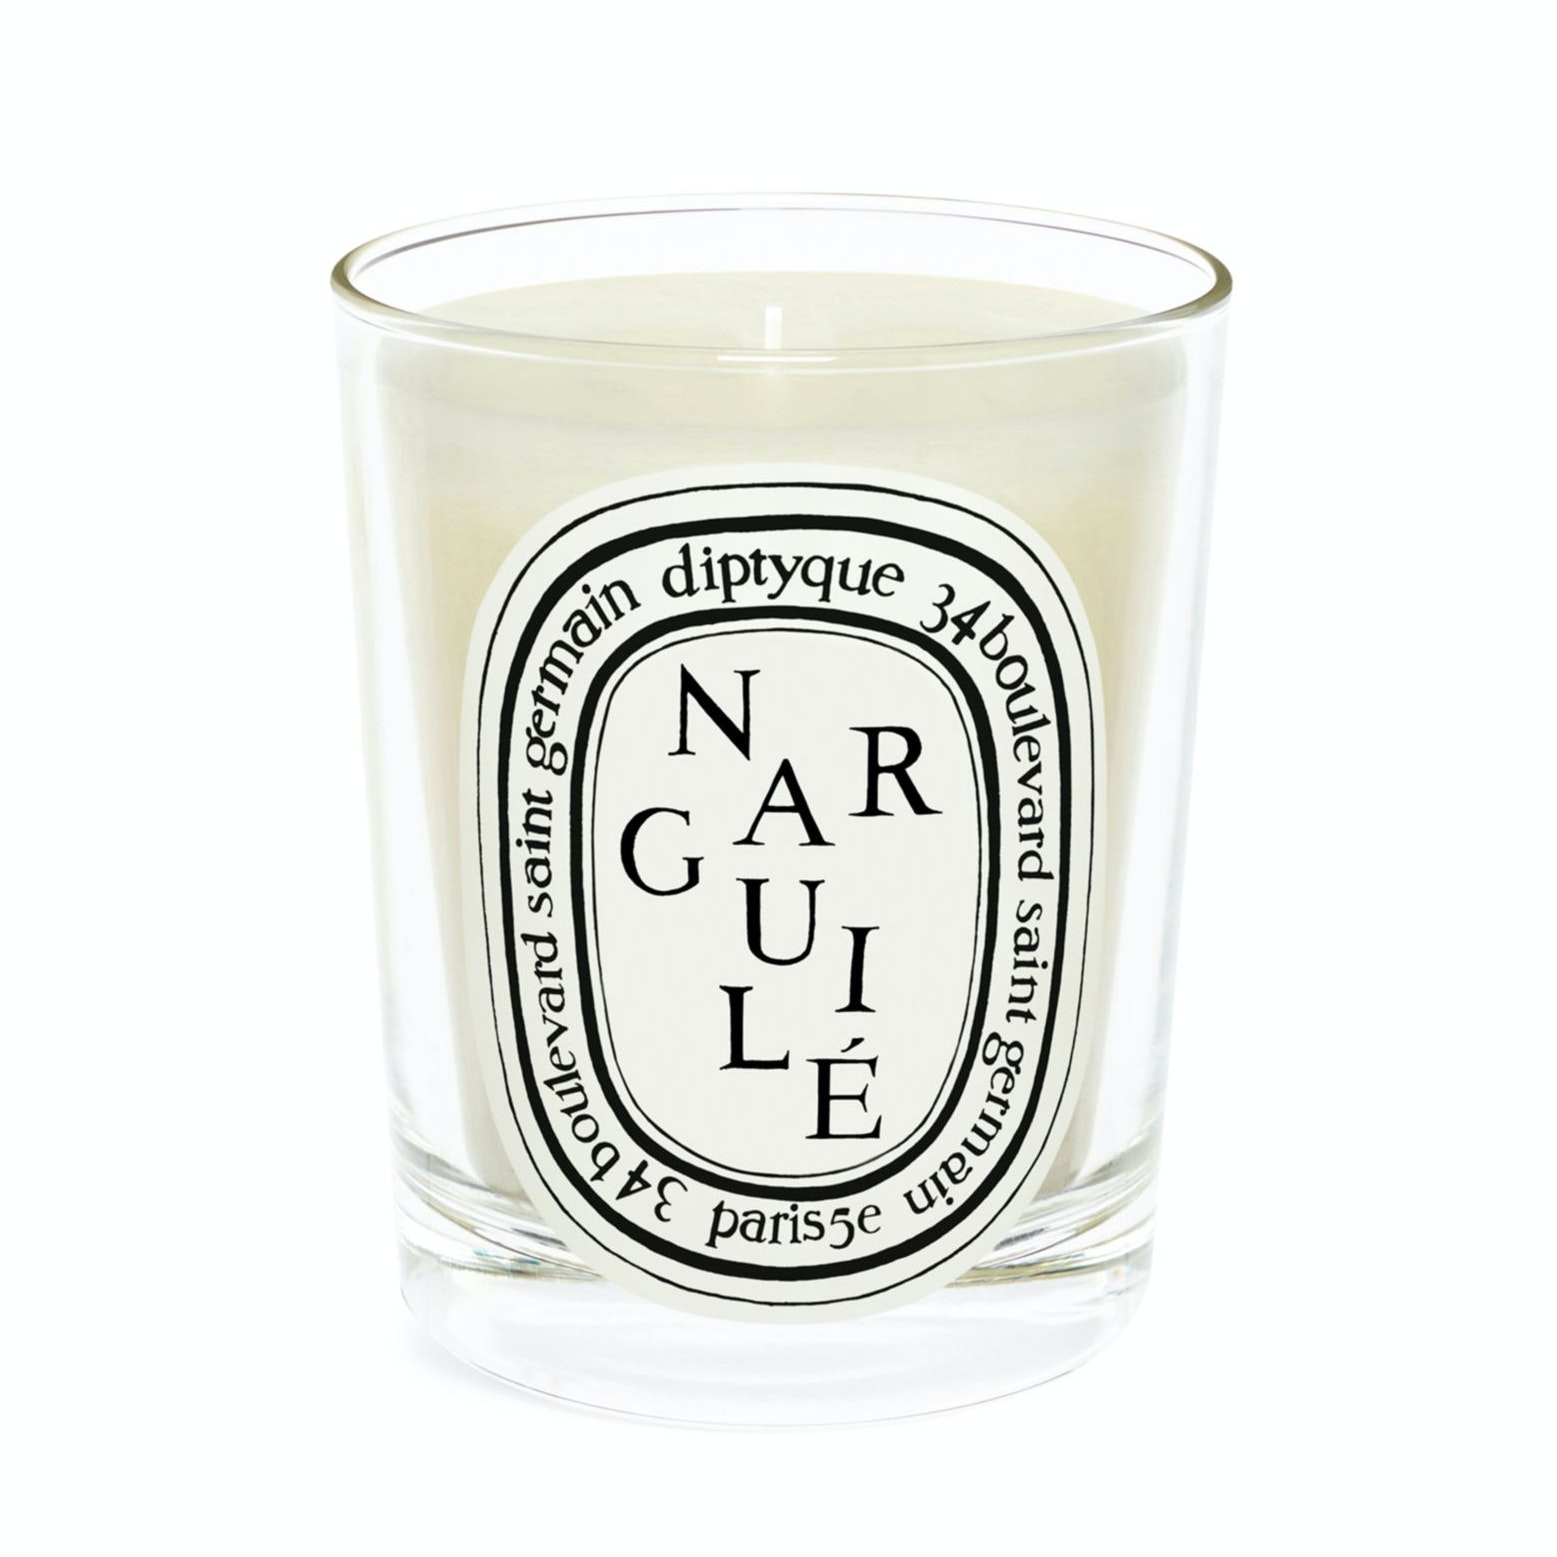 Diptyque® Narguile™ Classic Candle